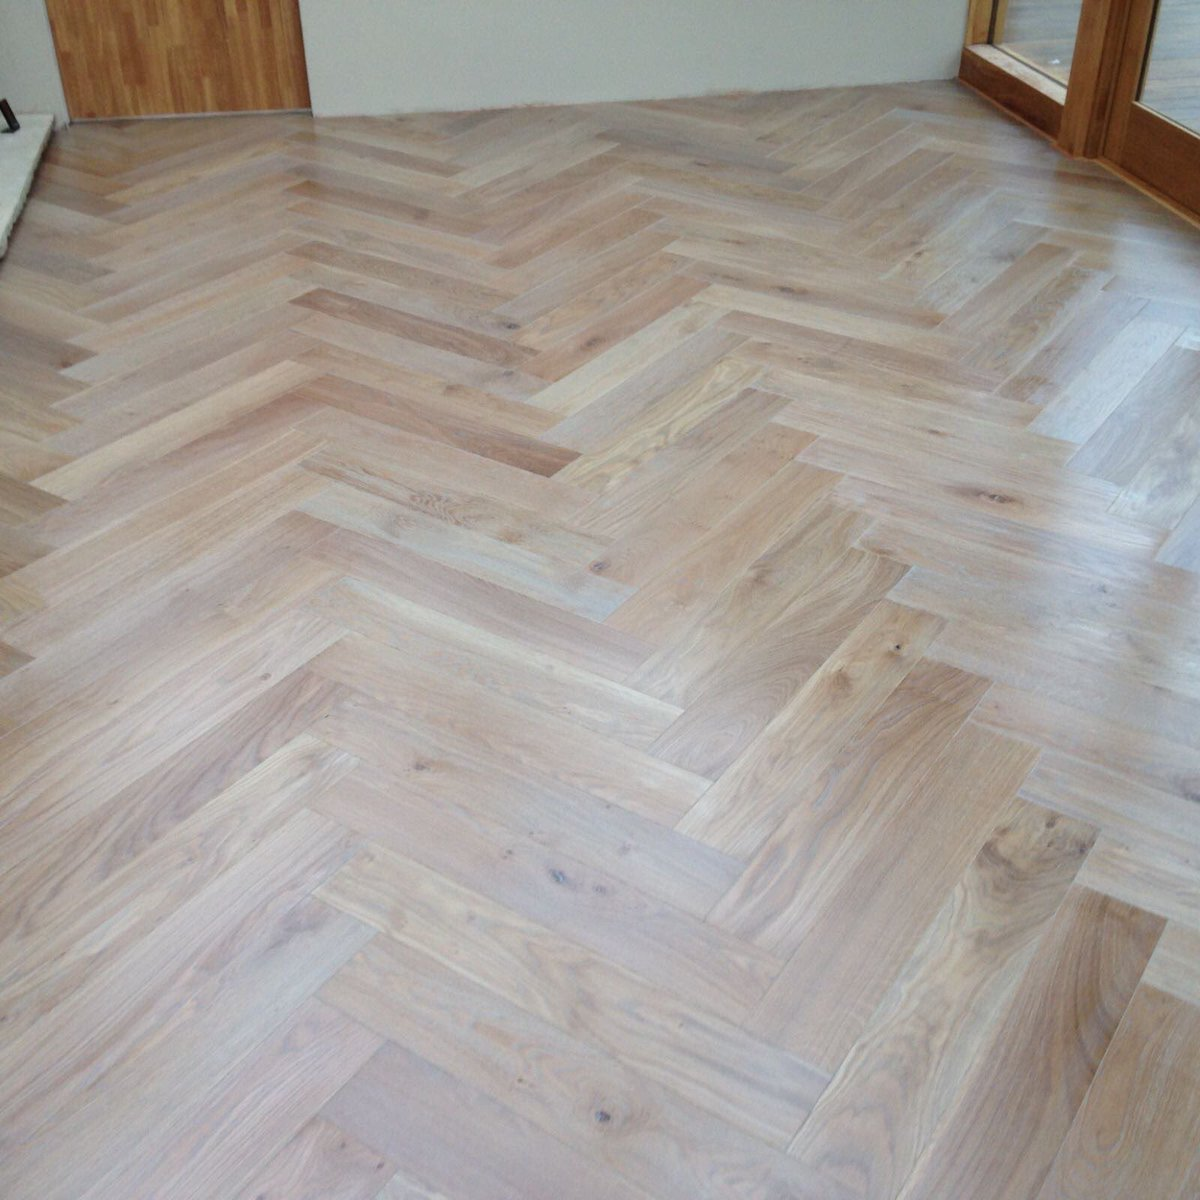 Samples At Our Knutsford Design Centre And Highly Recommend You Look Want The Very Best Oak Parquet Flooring Should Consider Panaget